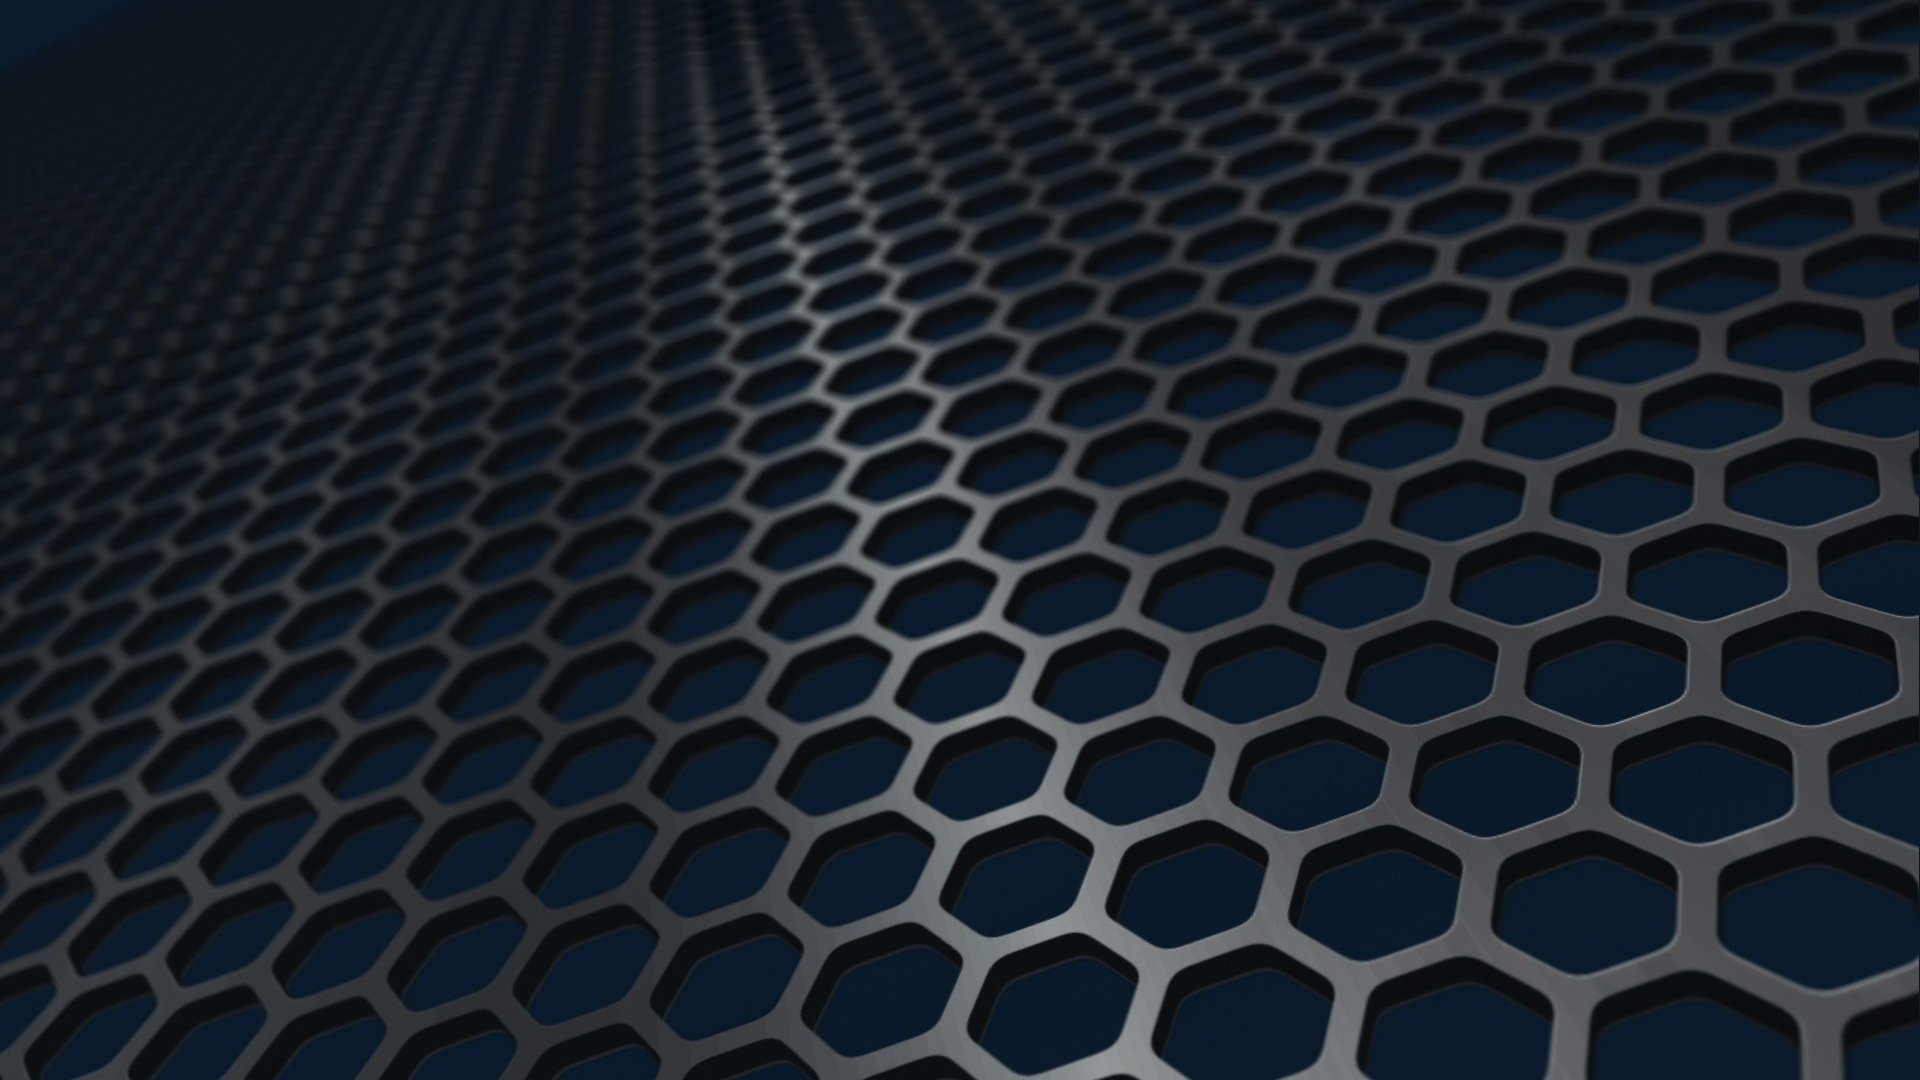 Iron honeycomb mesh Mac Wallpaper Download AllMacWallpaper 1920x1080